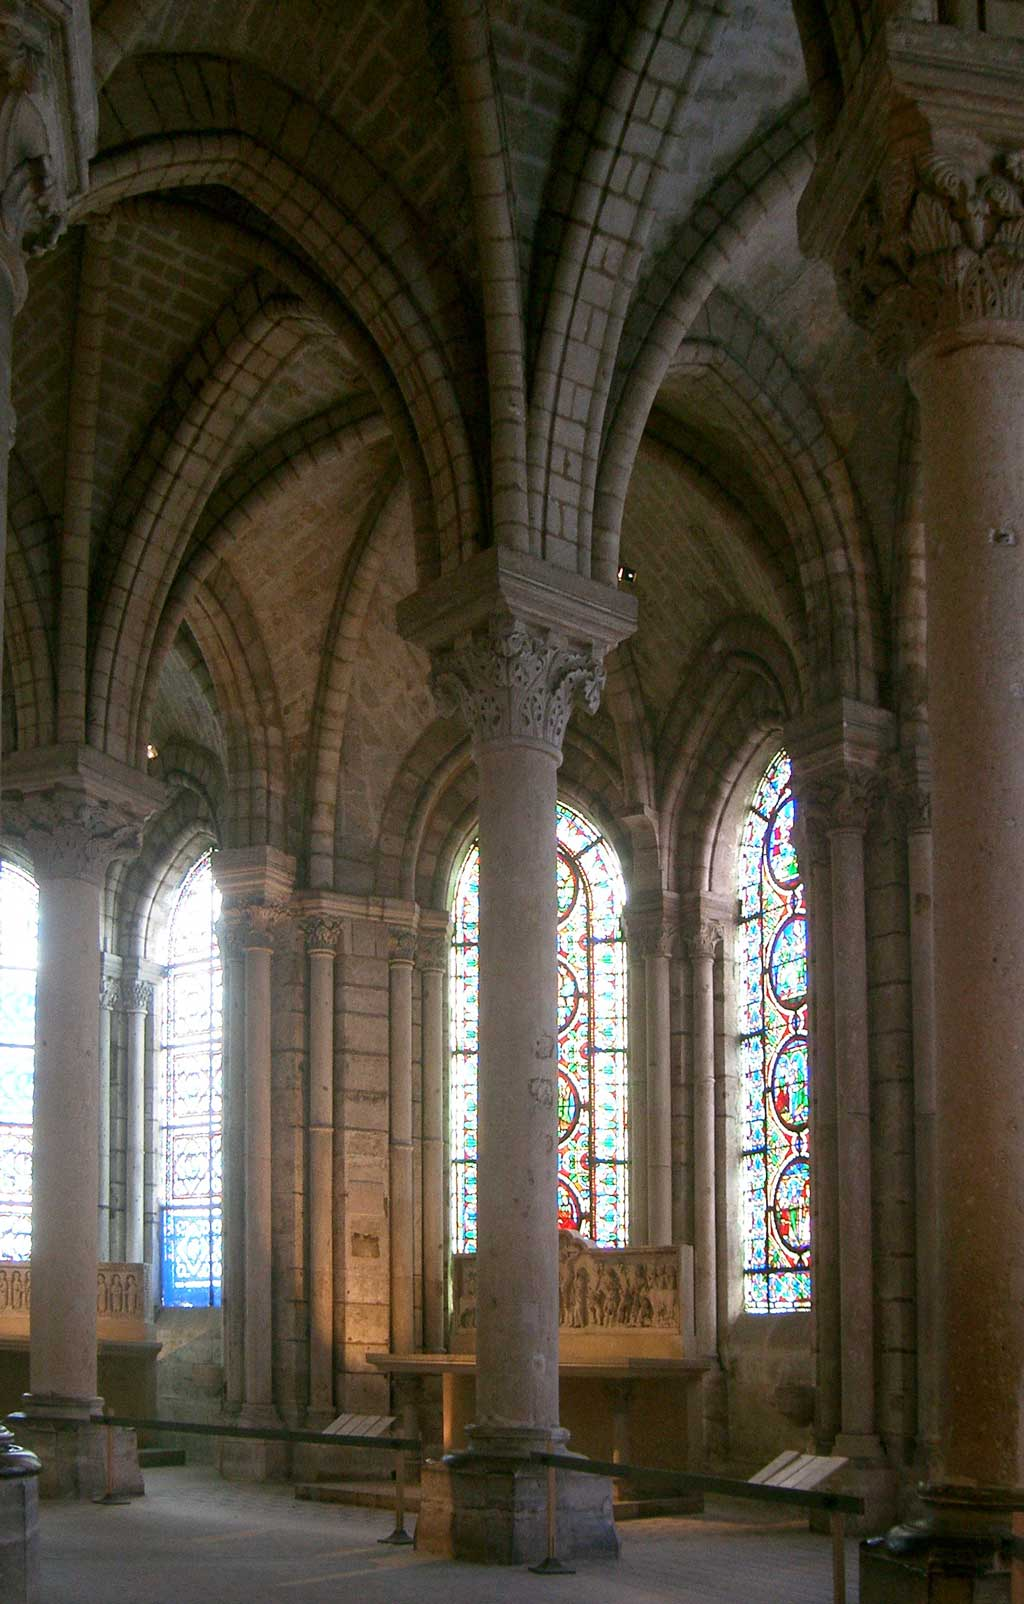 The ambulatory at St. Denis depicting two columns behind which lie the chapels of the cathedral.